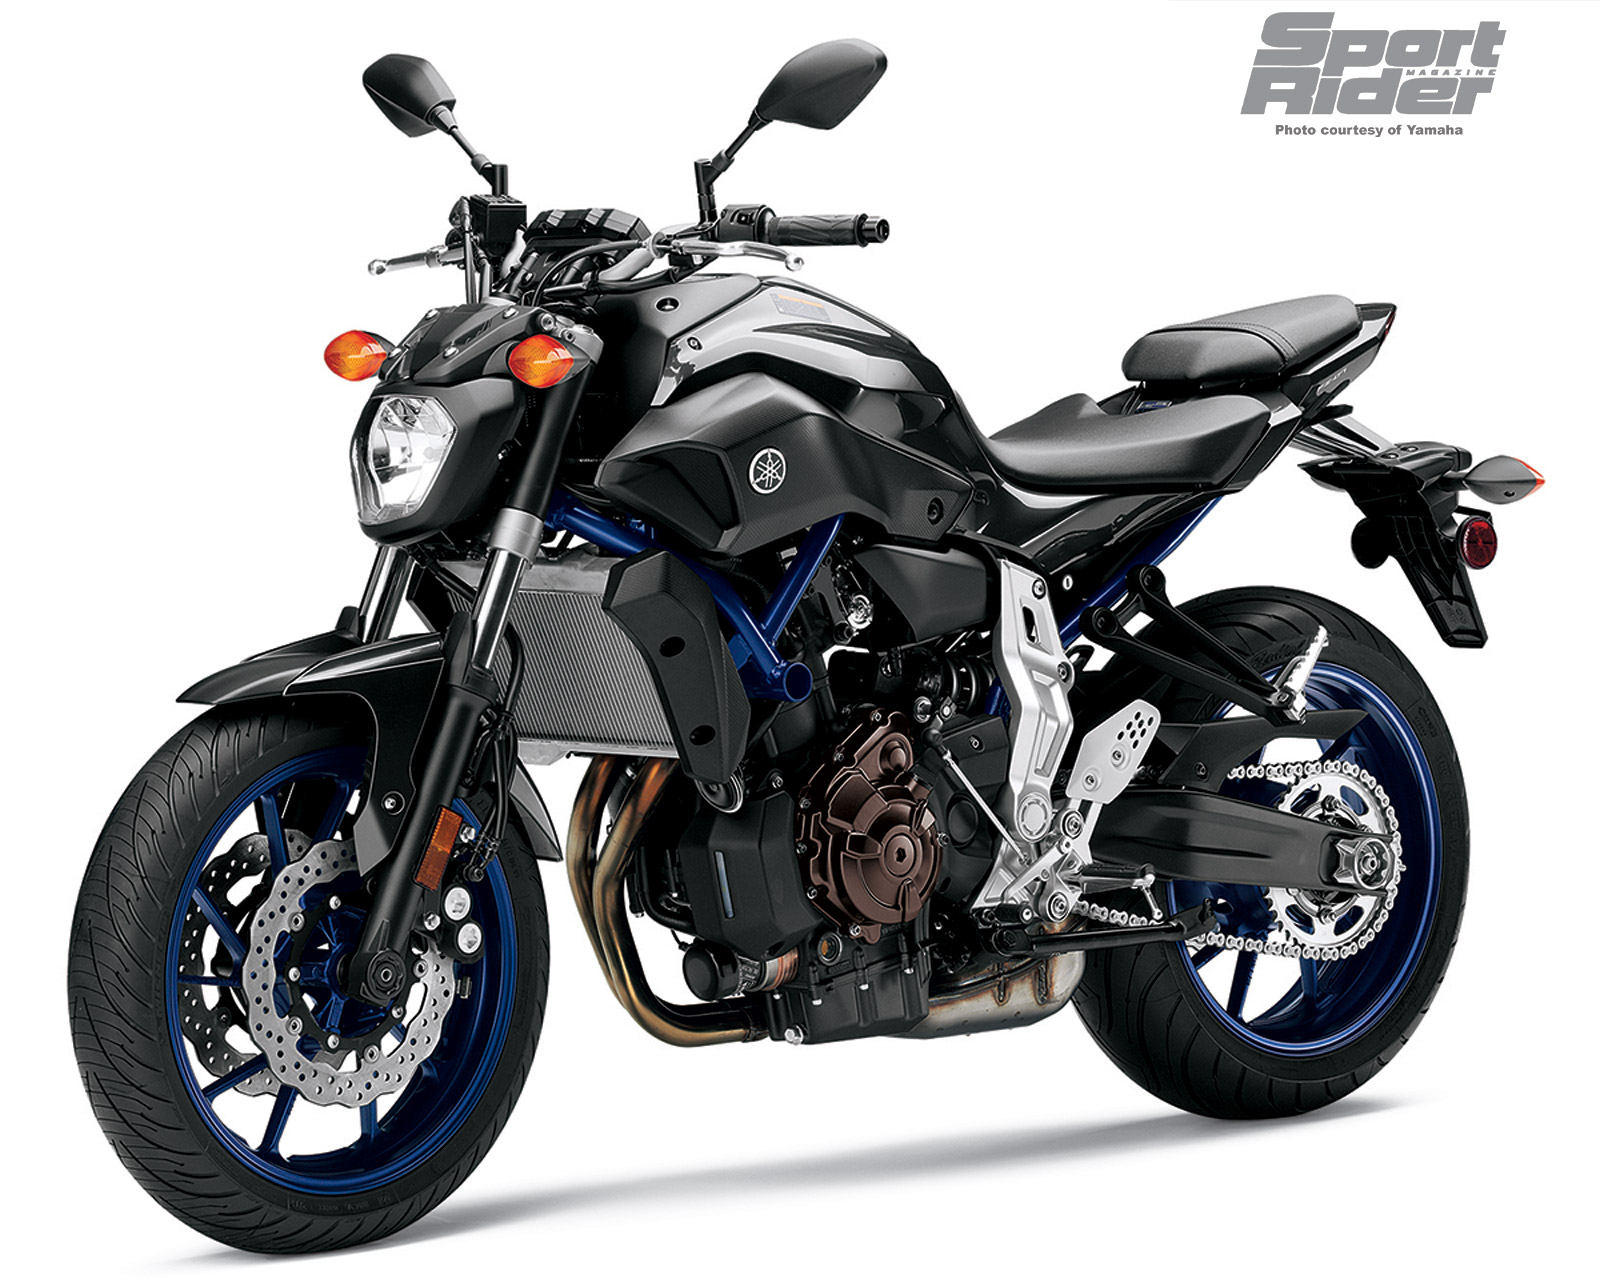 Photos: 2015 Yamaha FZ-07 First Look | Cycle World